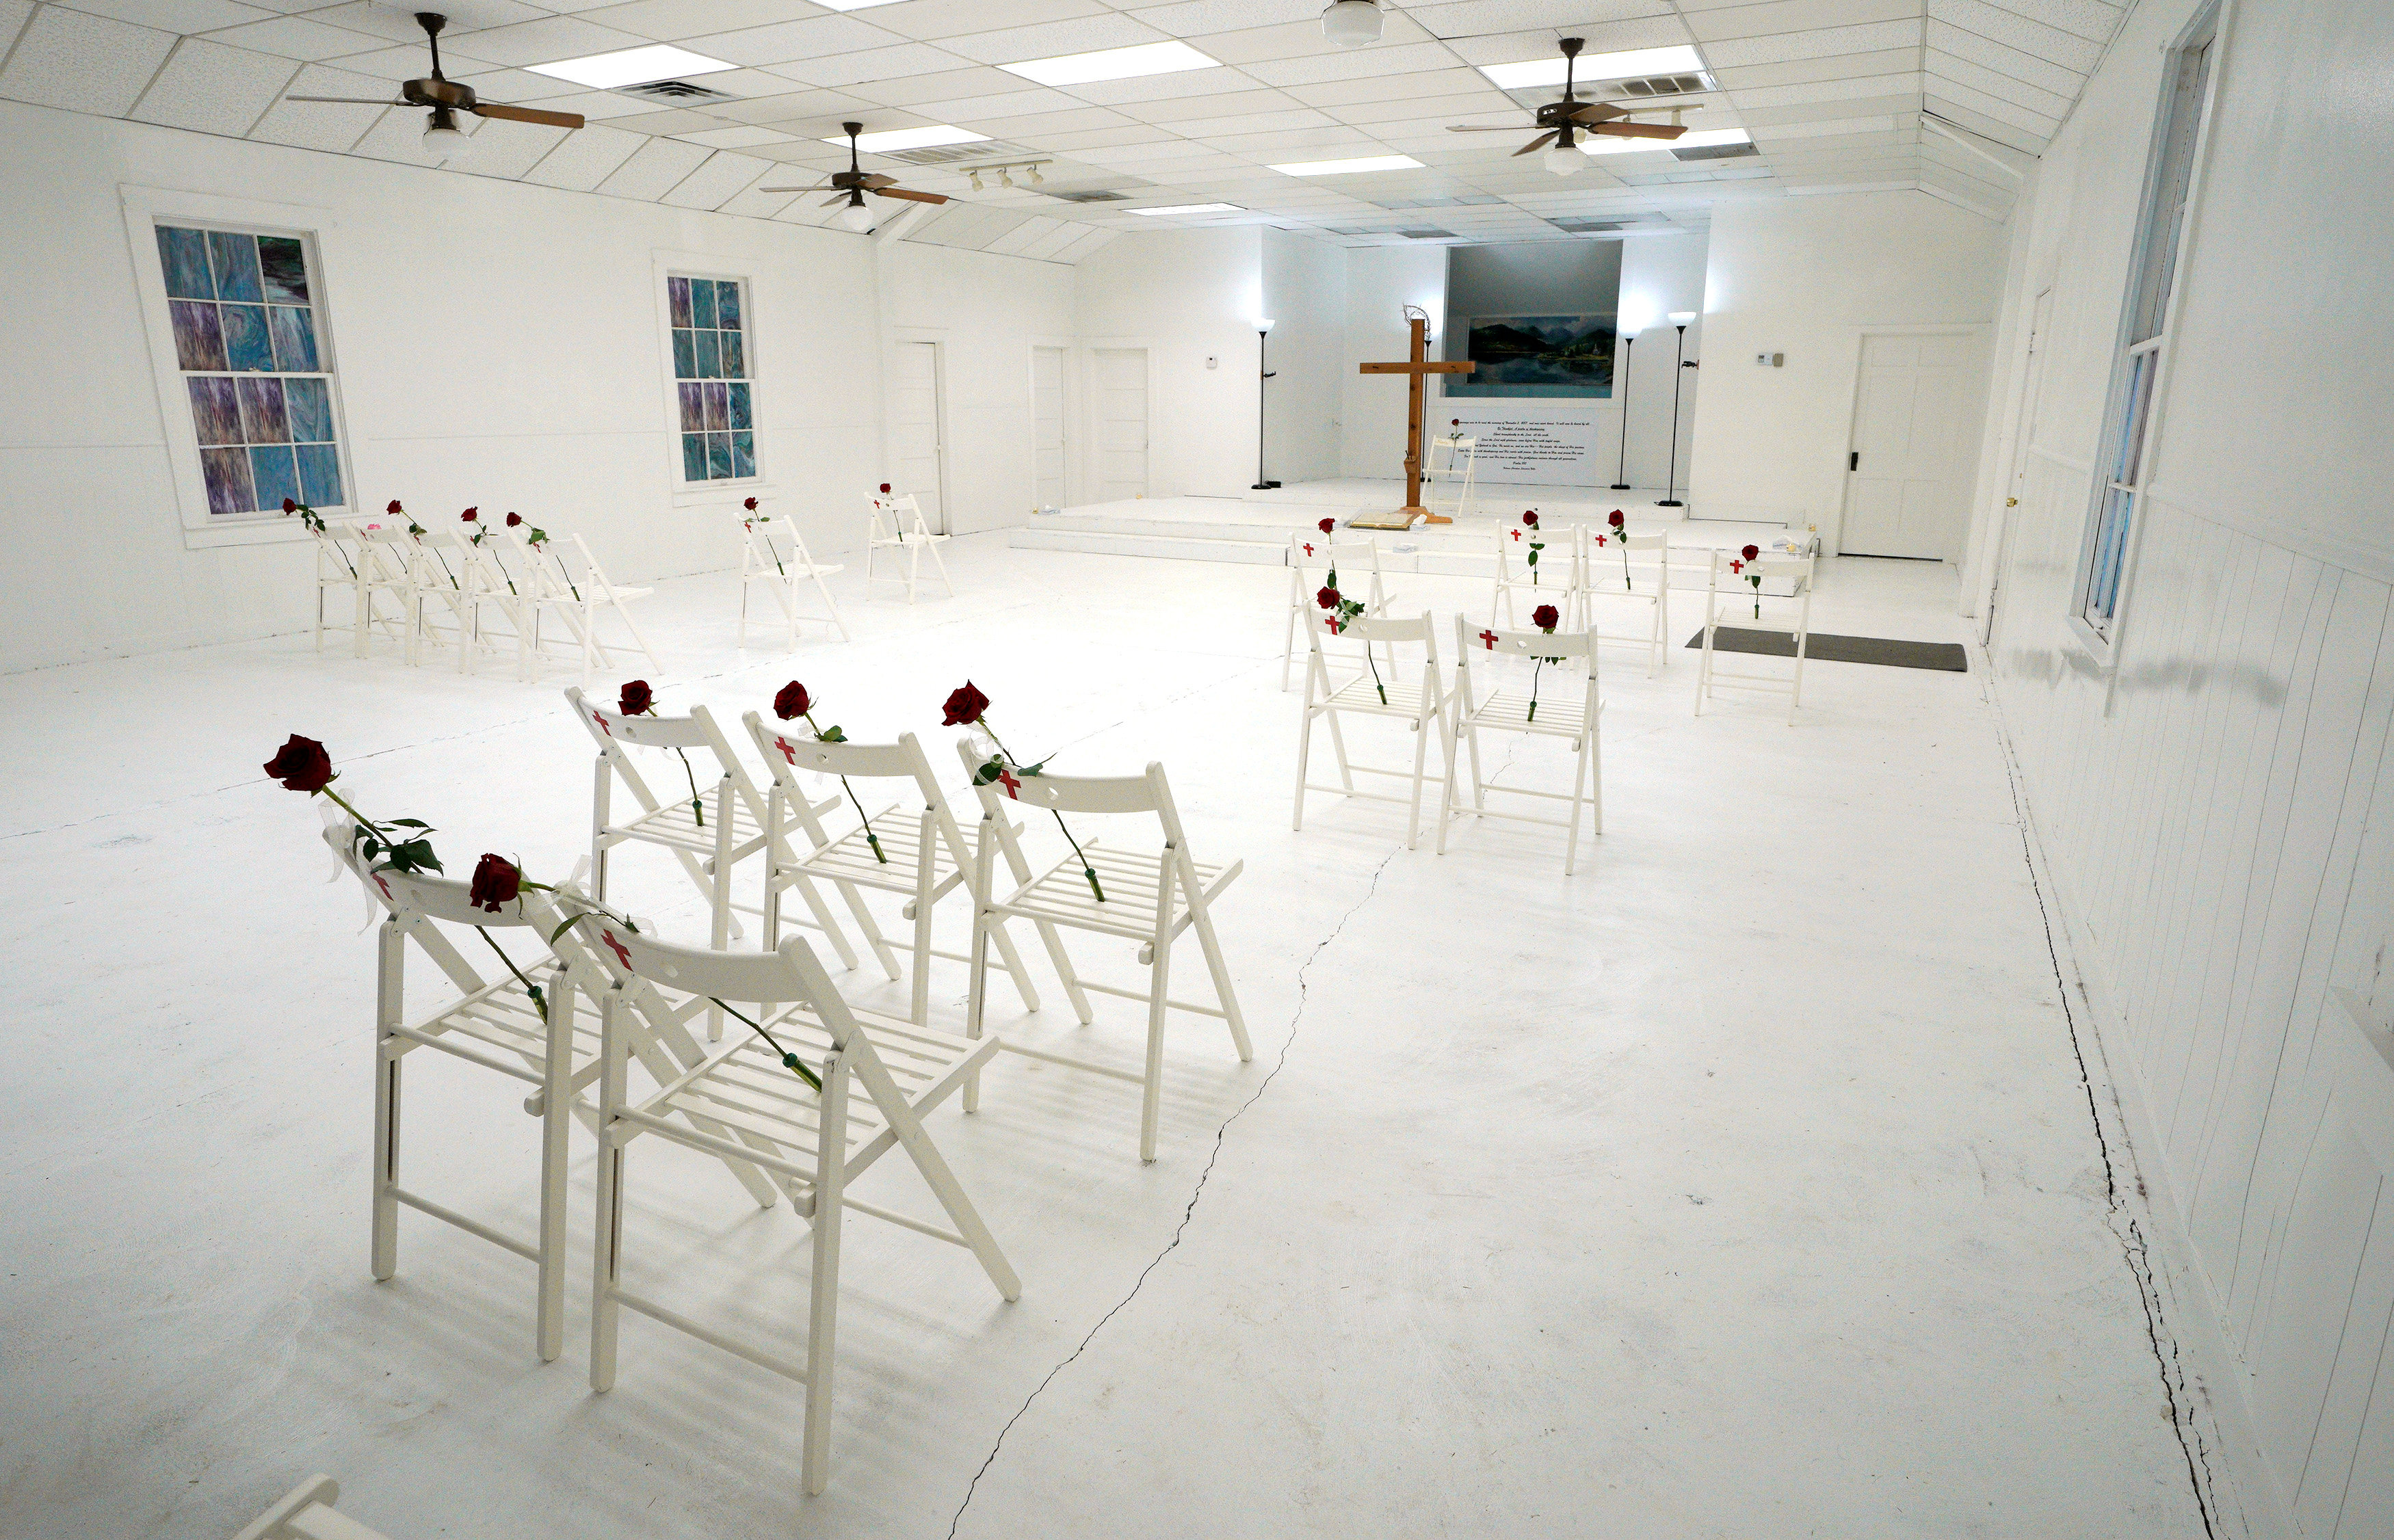 Chairs and roses mark where worshipers were found dead at the First Baptist Church of Sutherland Springs where 26 people were killed one week ago, as the church opens to the public as a memorial to those killed, in Sutherland Springs, Texas, U.S. November 12, 2017.